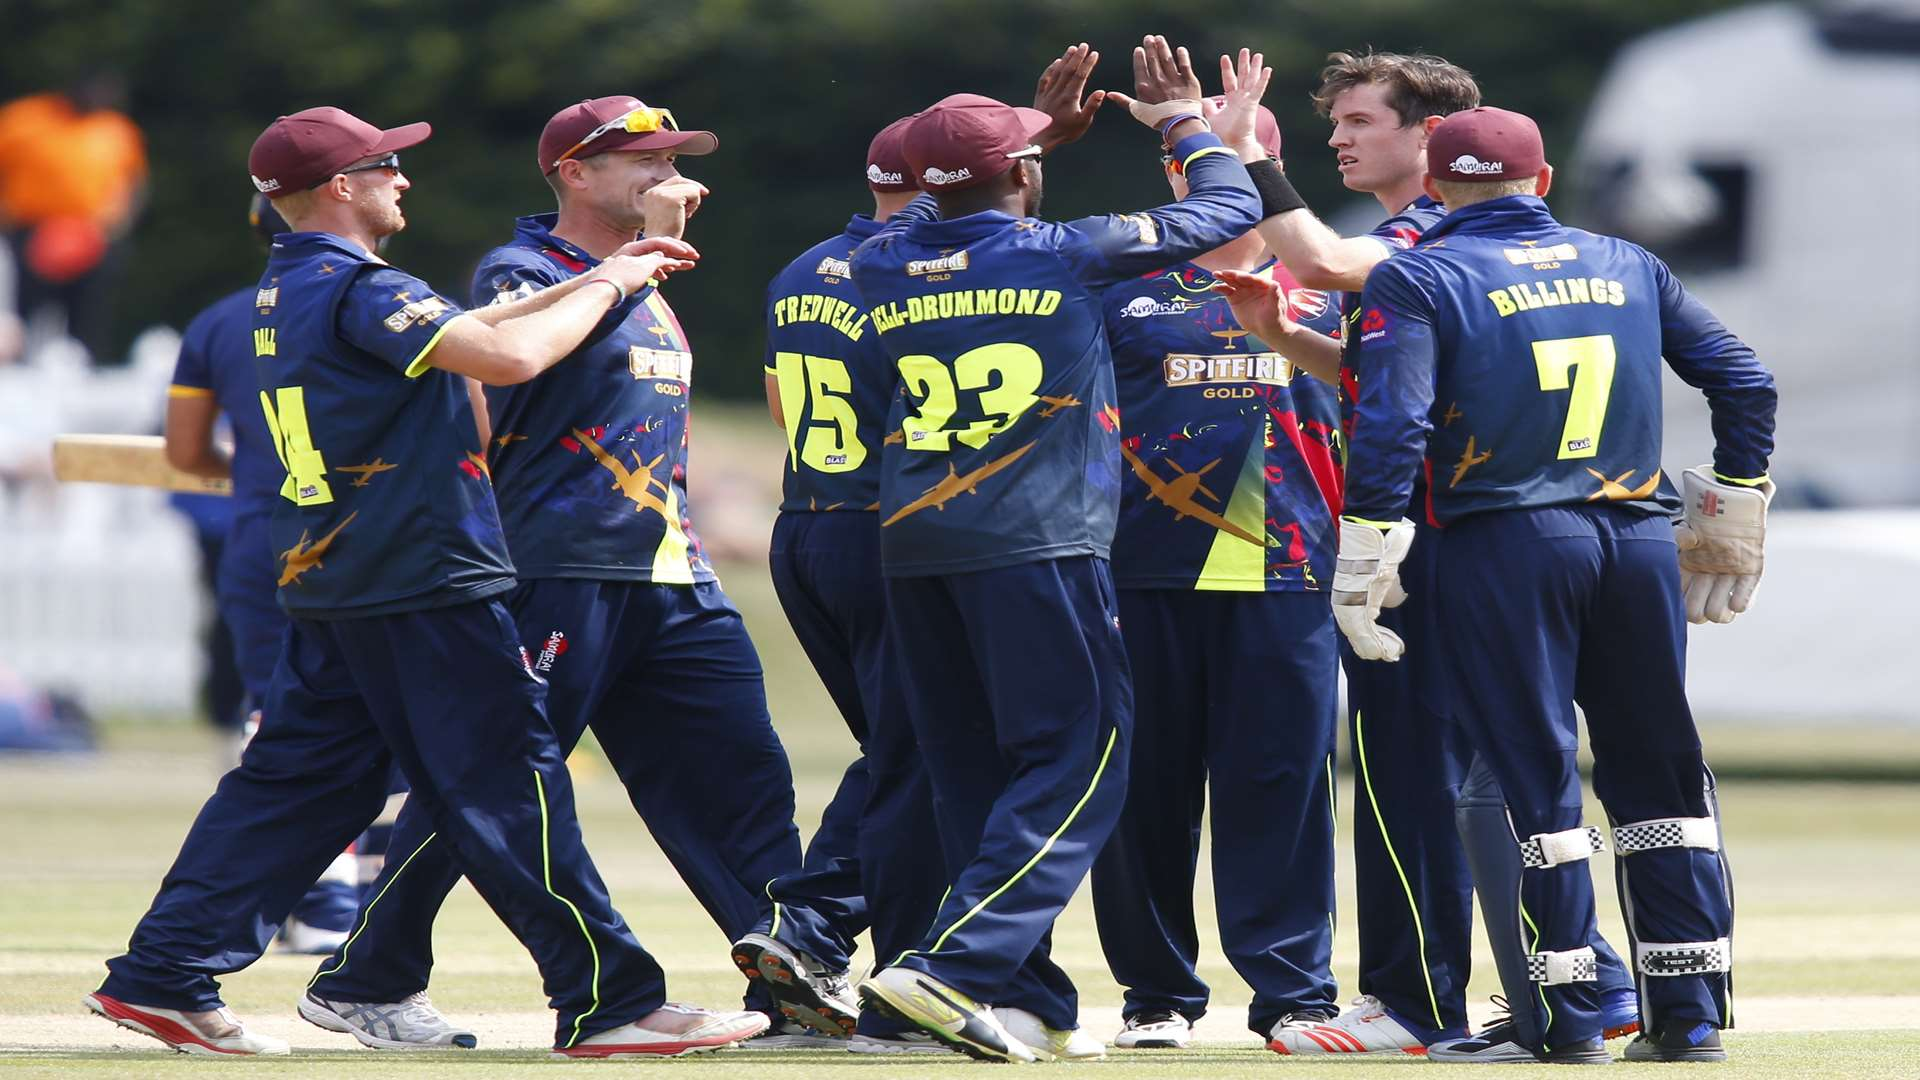 Adam Milne celebrates a wicket for Spitfires against Essex Eagles. Picture: Andy Jones